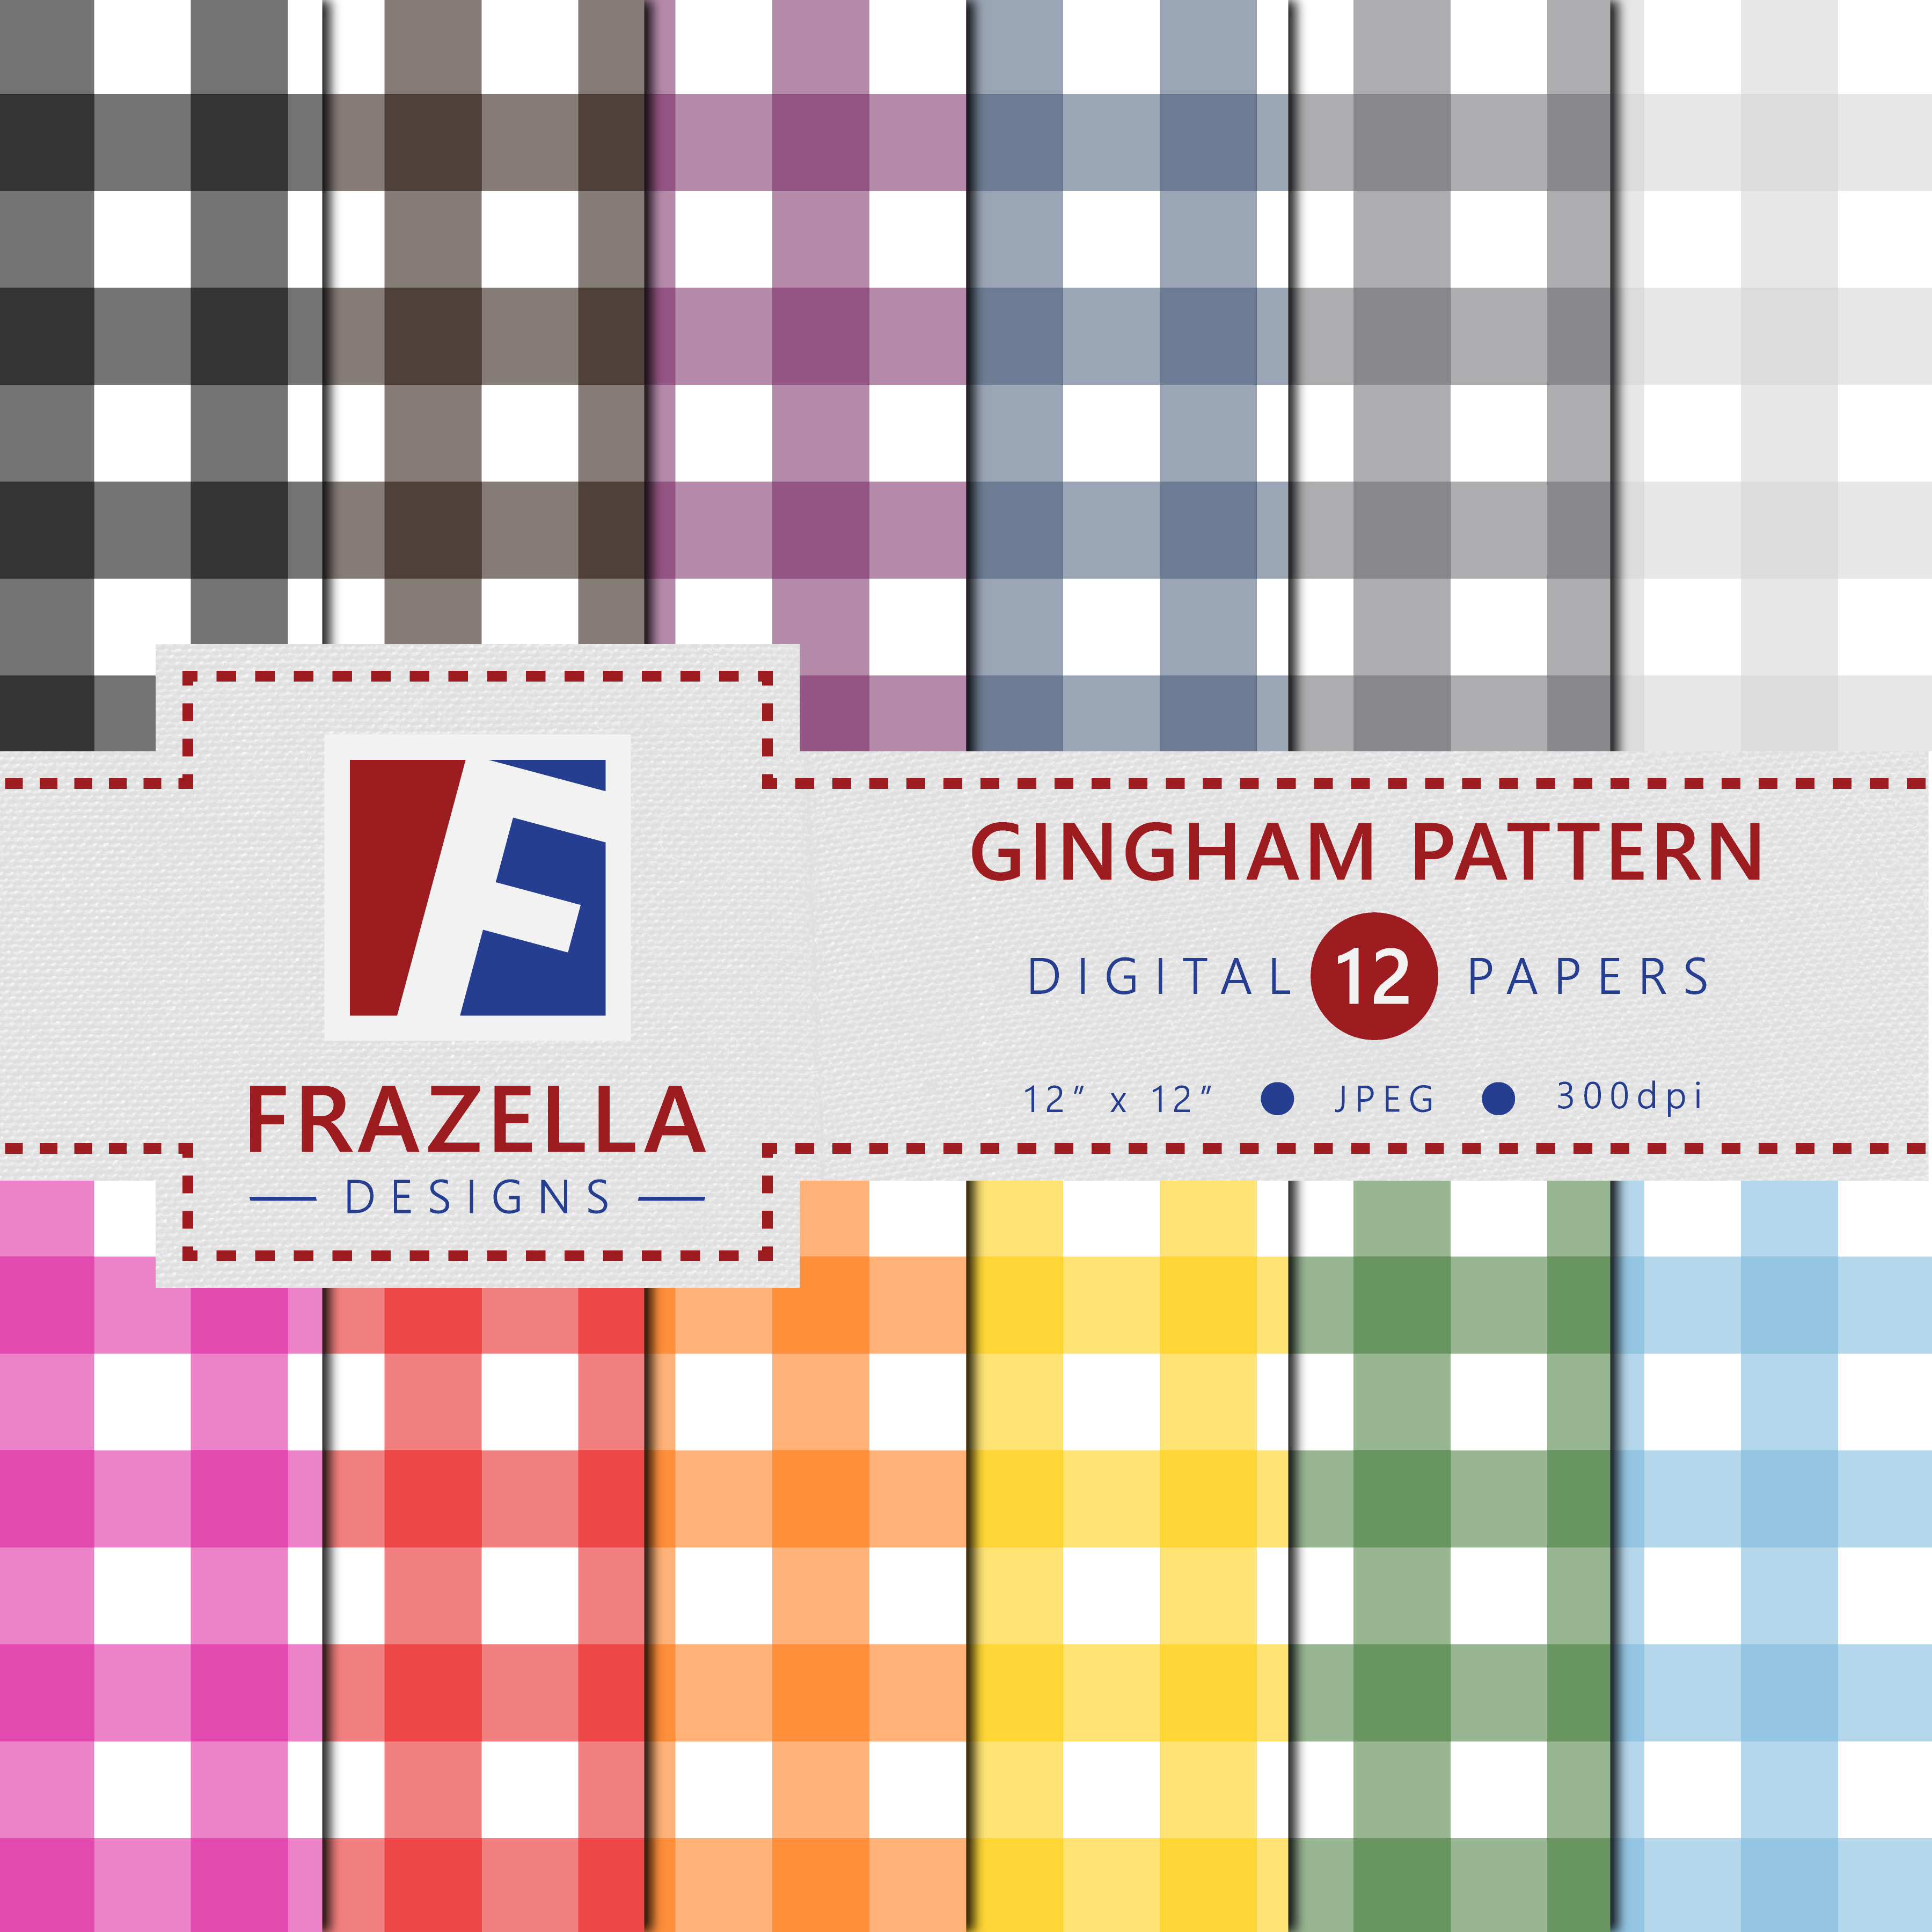 Download Free Gingham Pattern Digital Paper Collection Graphic By Frazella for Cricut Explore, Silhouette and other cutting machines.